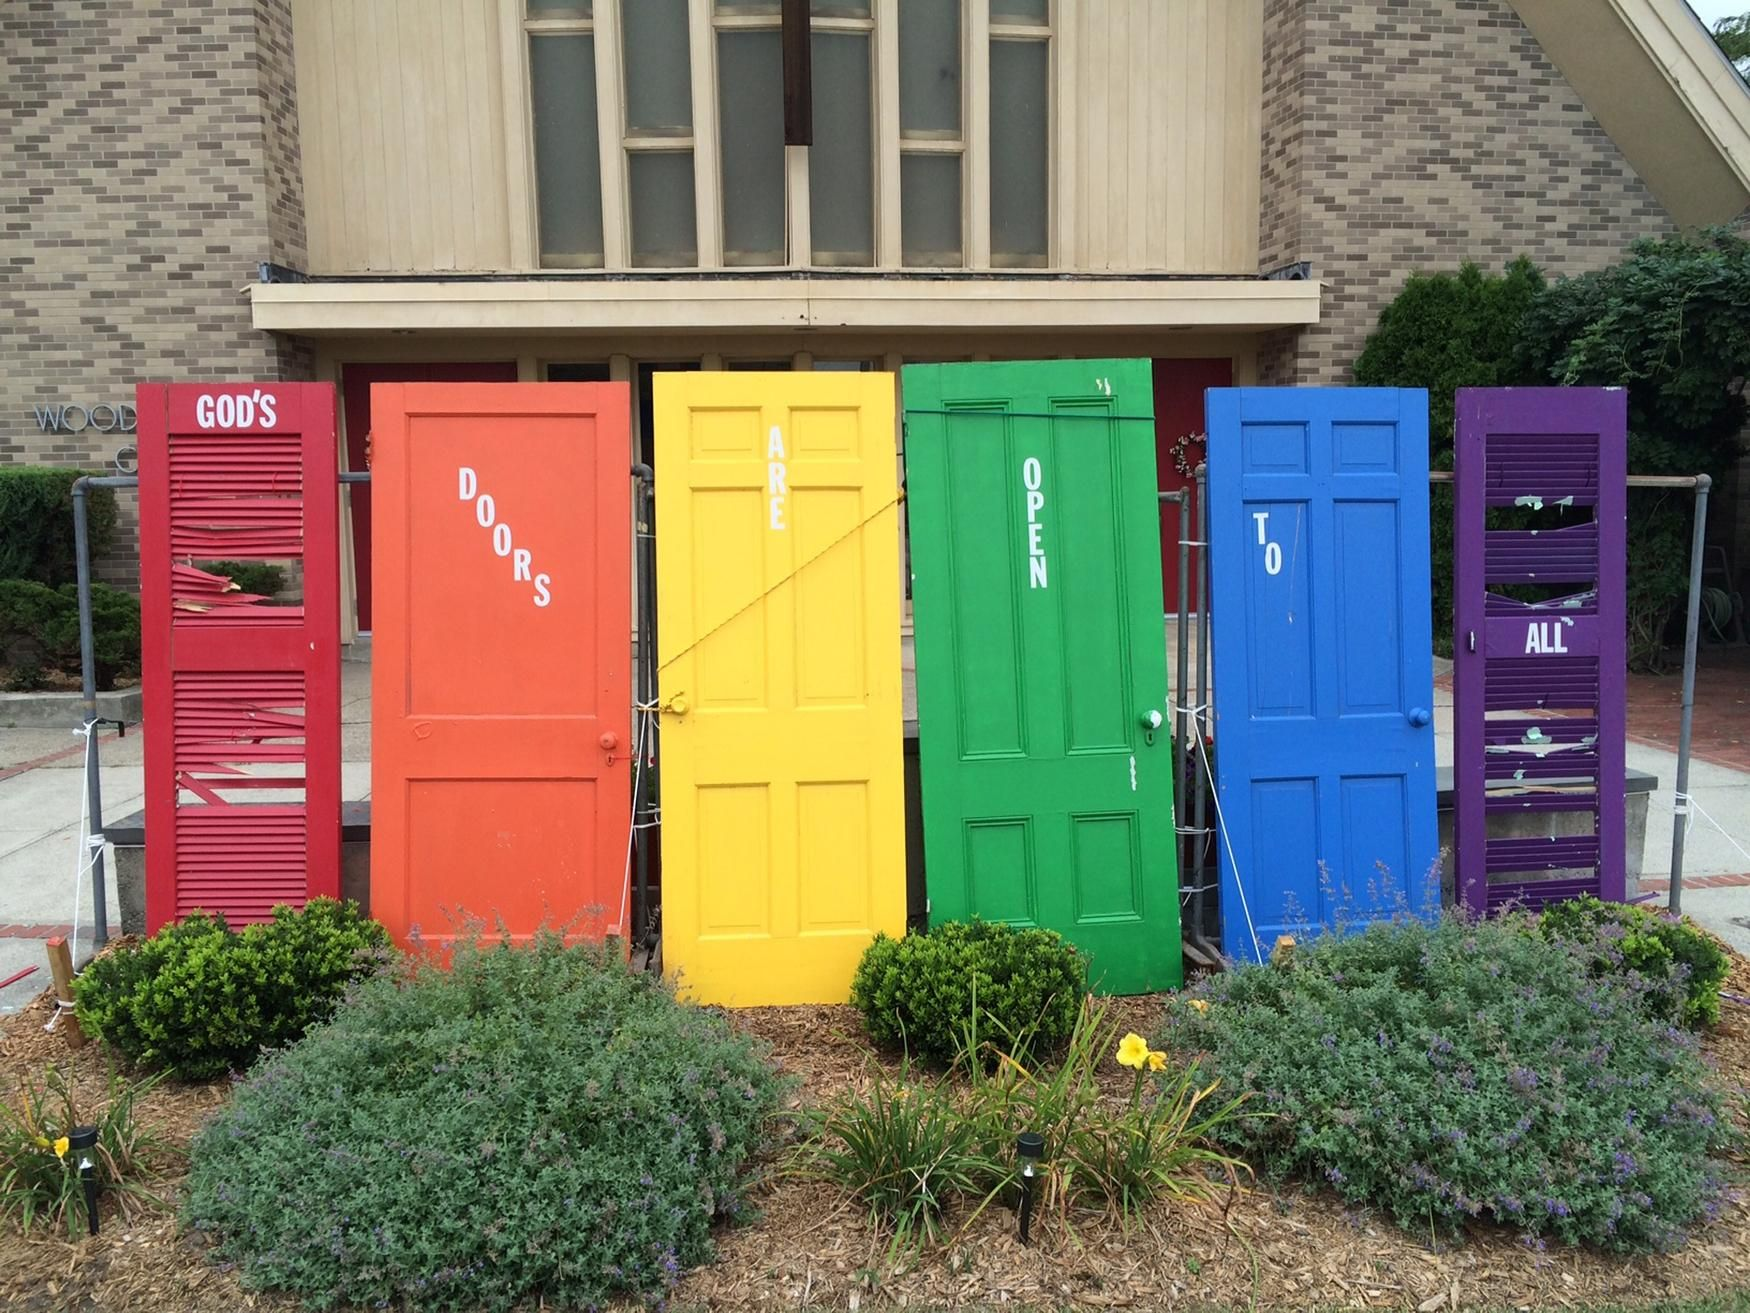 Intended as a symbol of inclusiveness the multicolored doors on intended as a symbol of inclusiveness the multicolored doors on display at woodridge congregational united biocorpaavc